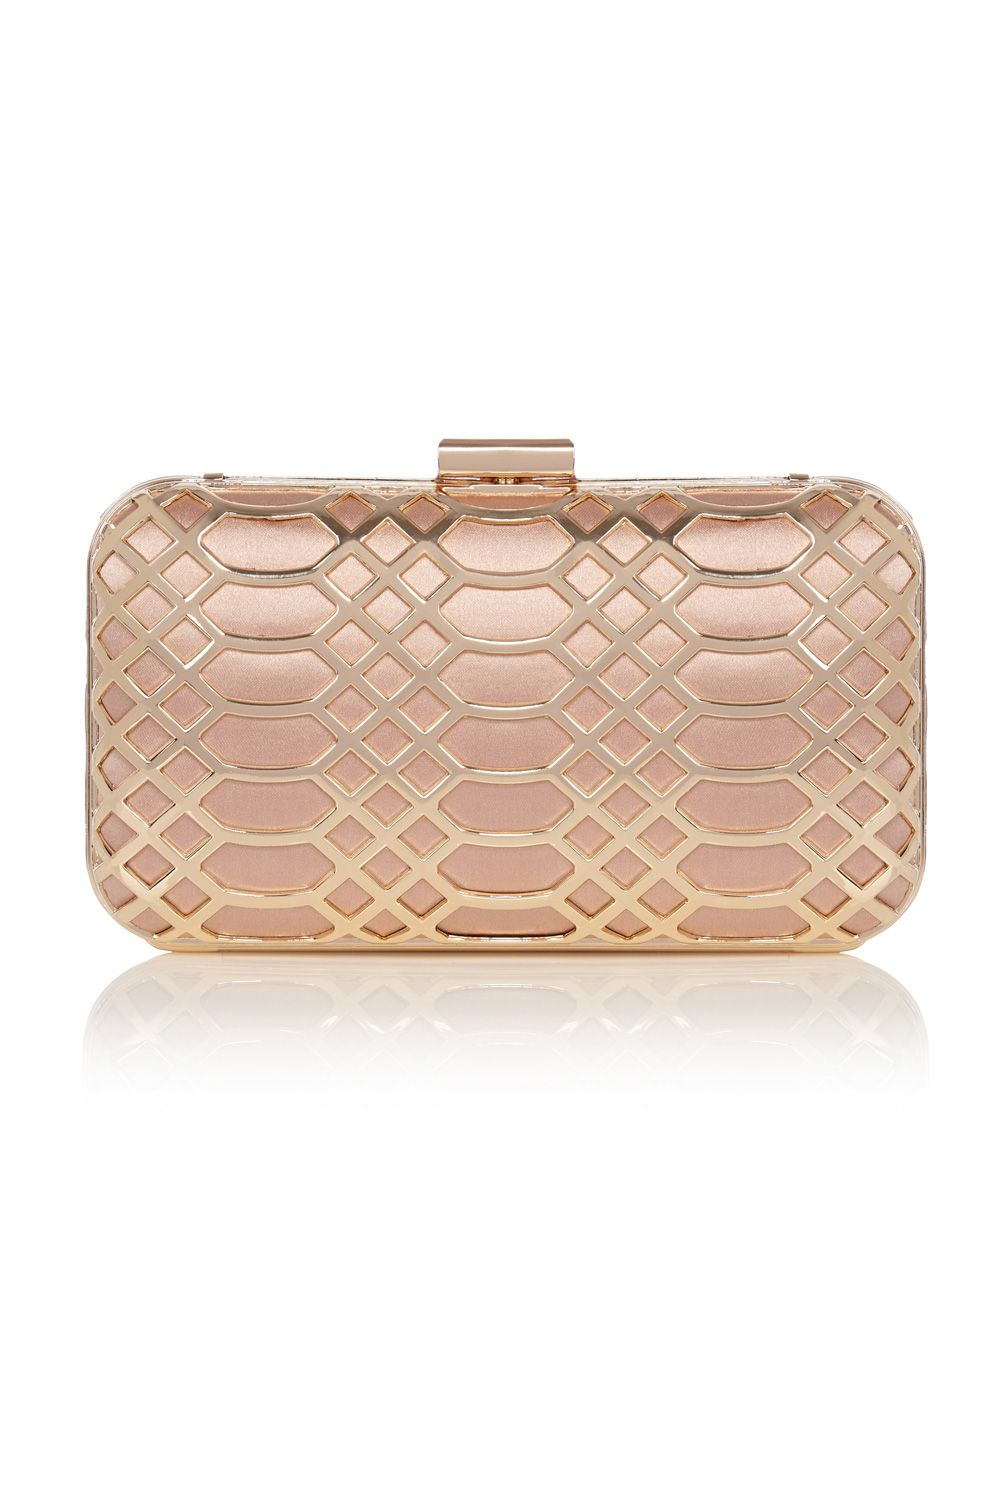 414175f7b All Accessories | Metallics ROSE GOLD CLUTCH | Coast Stores Limited ...